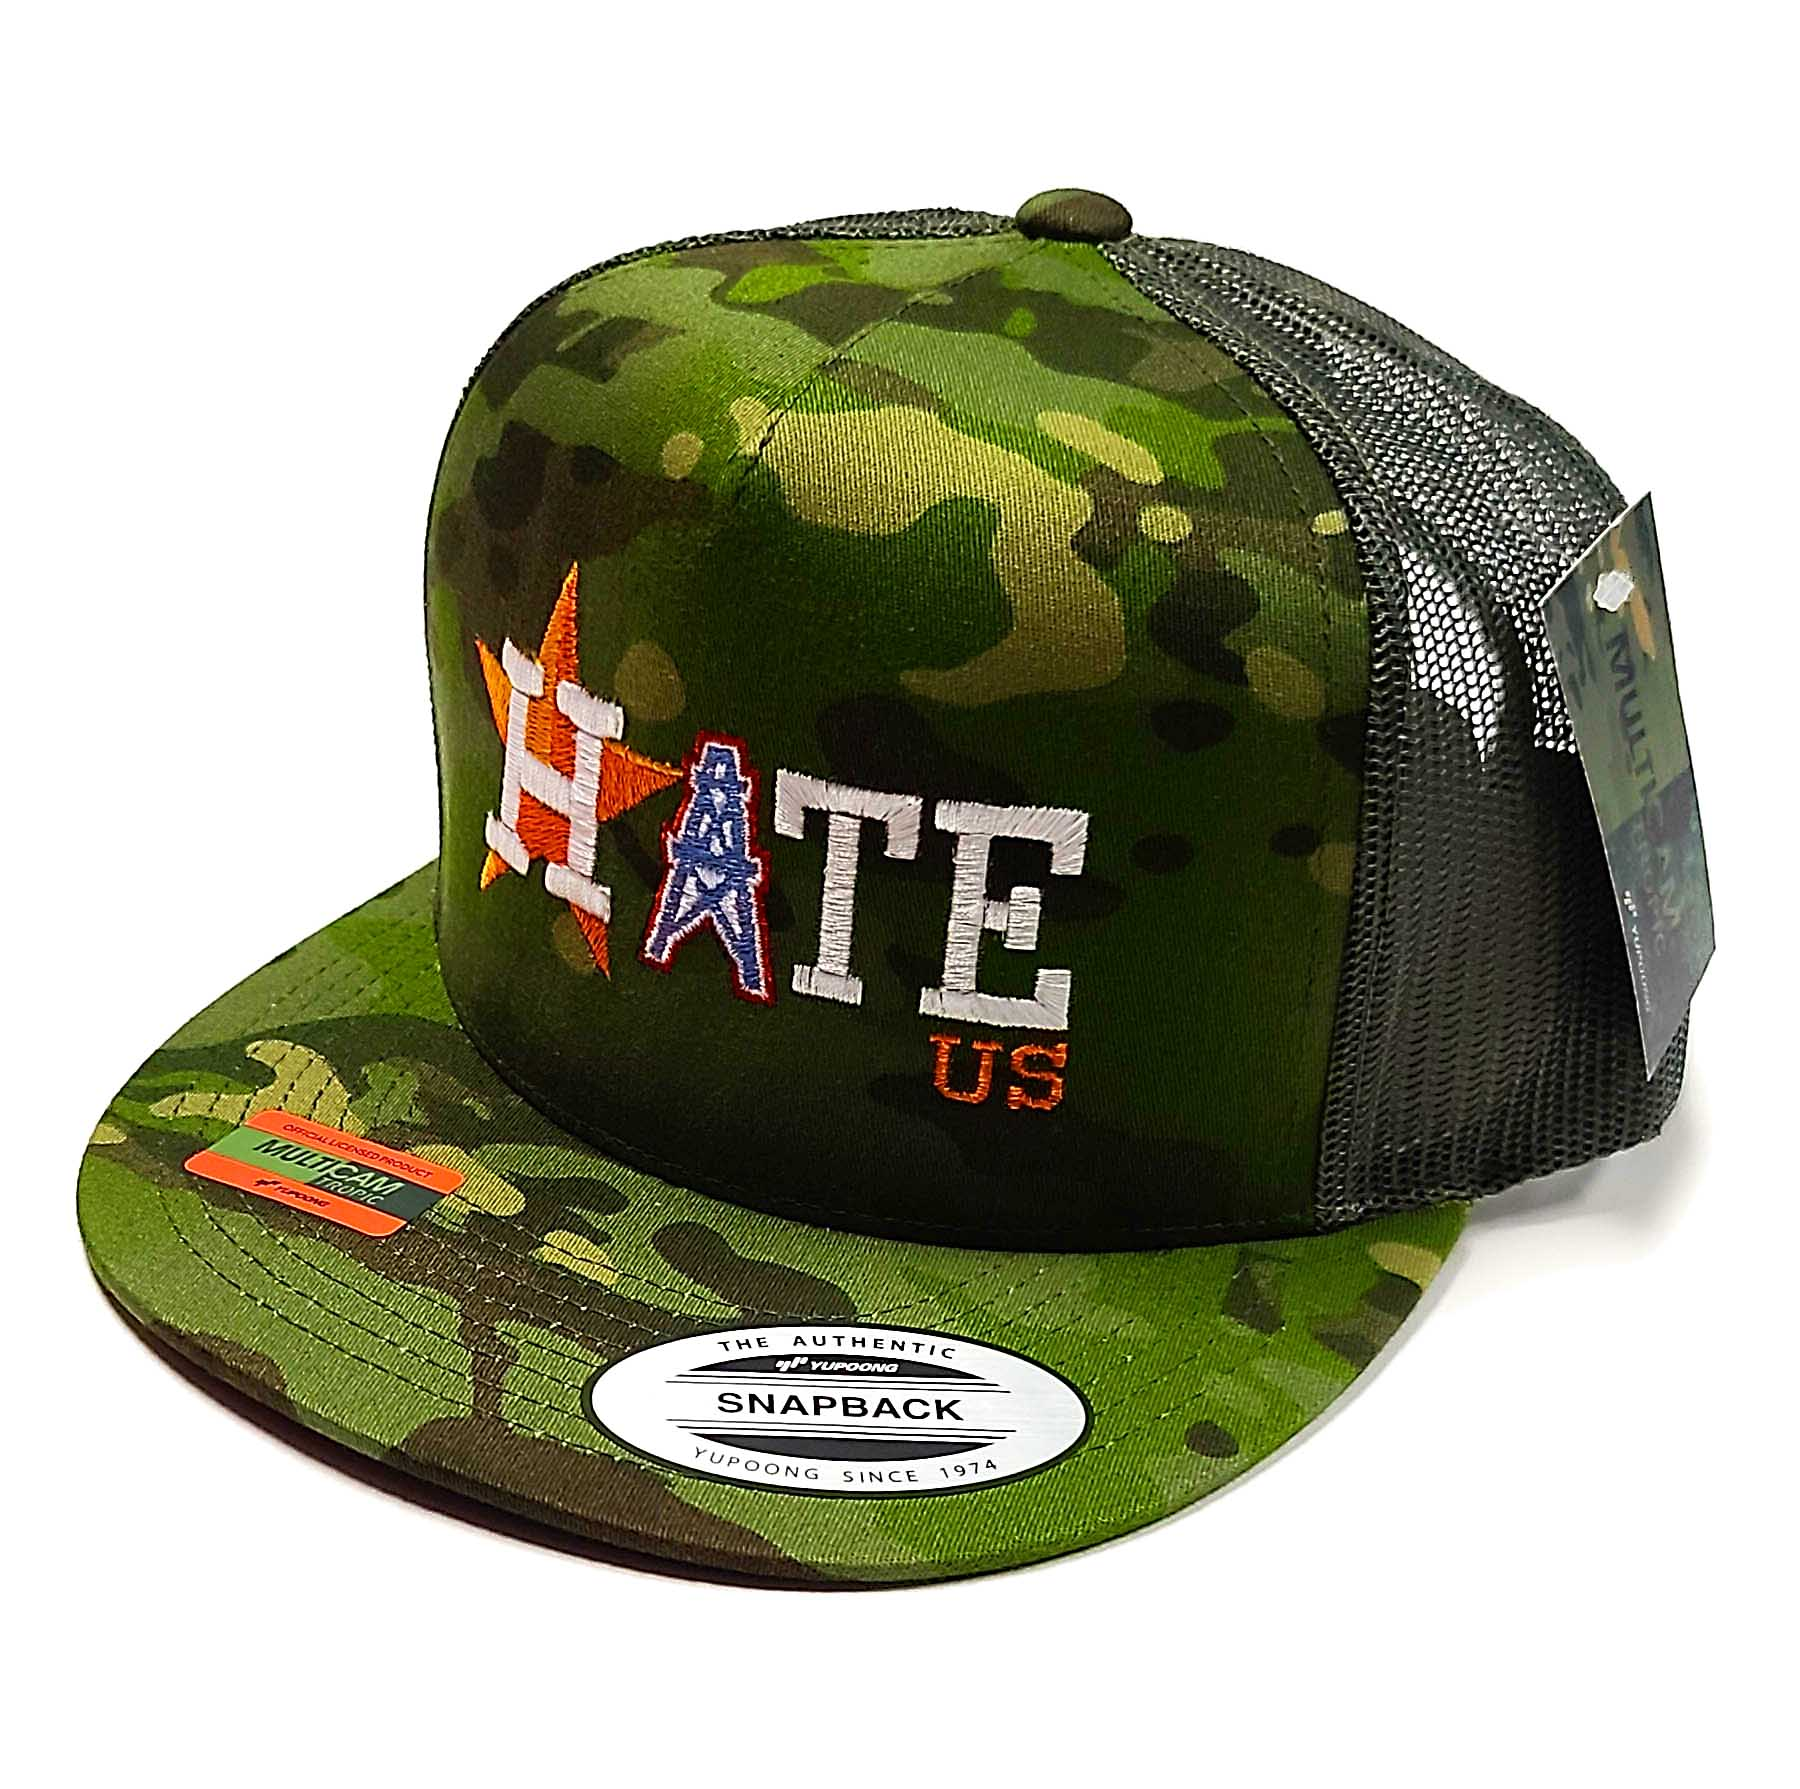 Houston Astros Hate Us Featuring Oilers Derrick on a 5 panel flat bill camo classic trucker cap